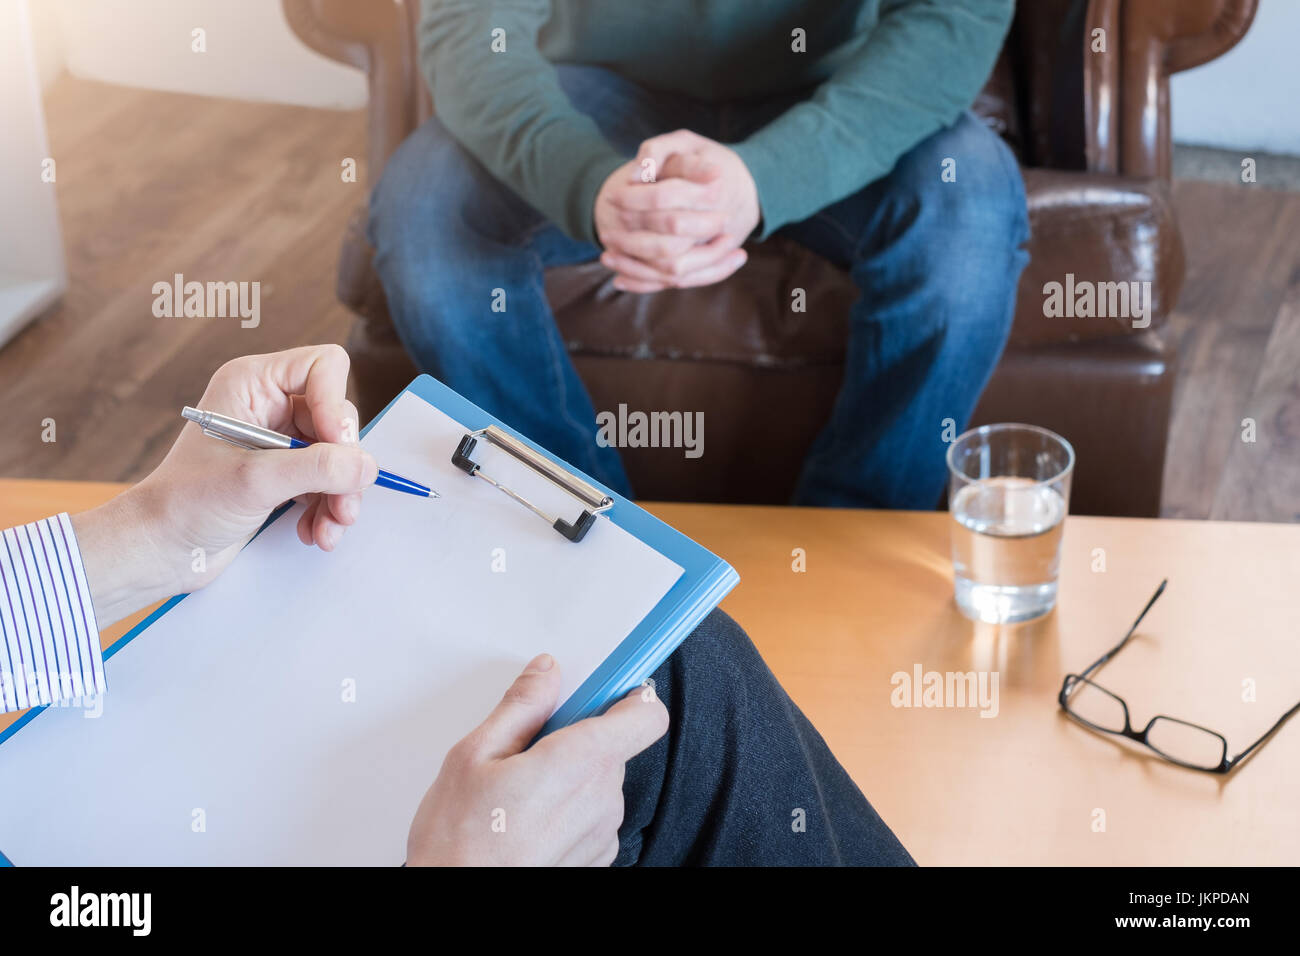 Psychologist taking notes during psychotherapy session Stock Photo